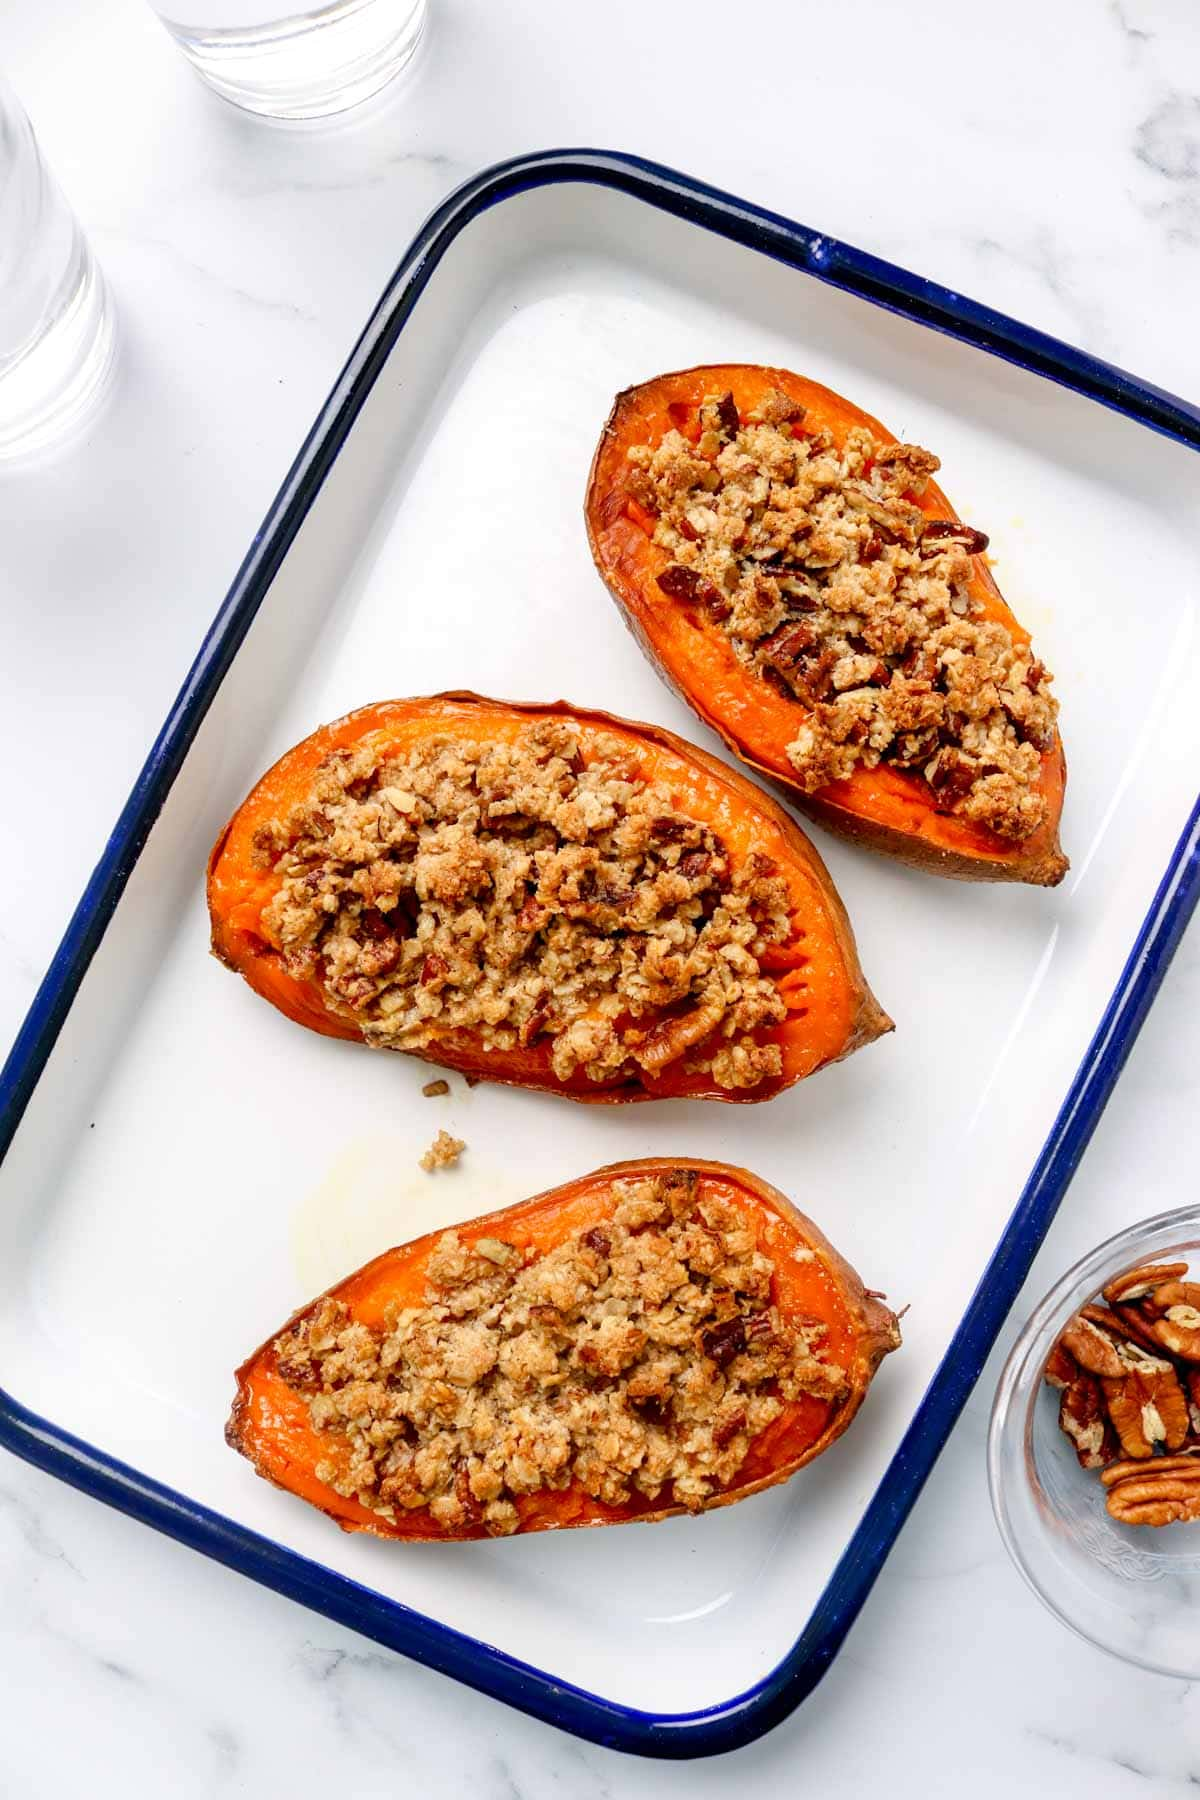 Three mini sweet potato casserole boats with streusel and pecans.